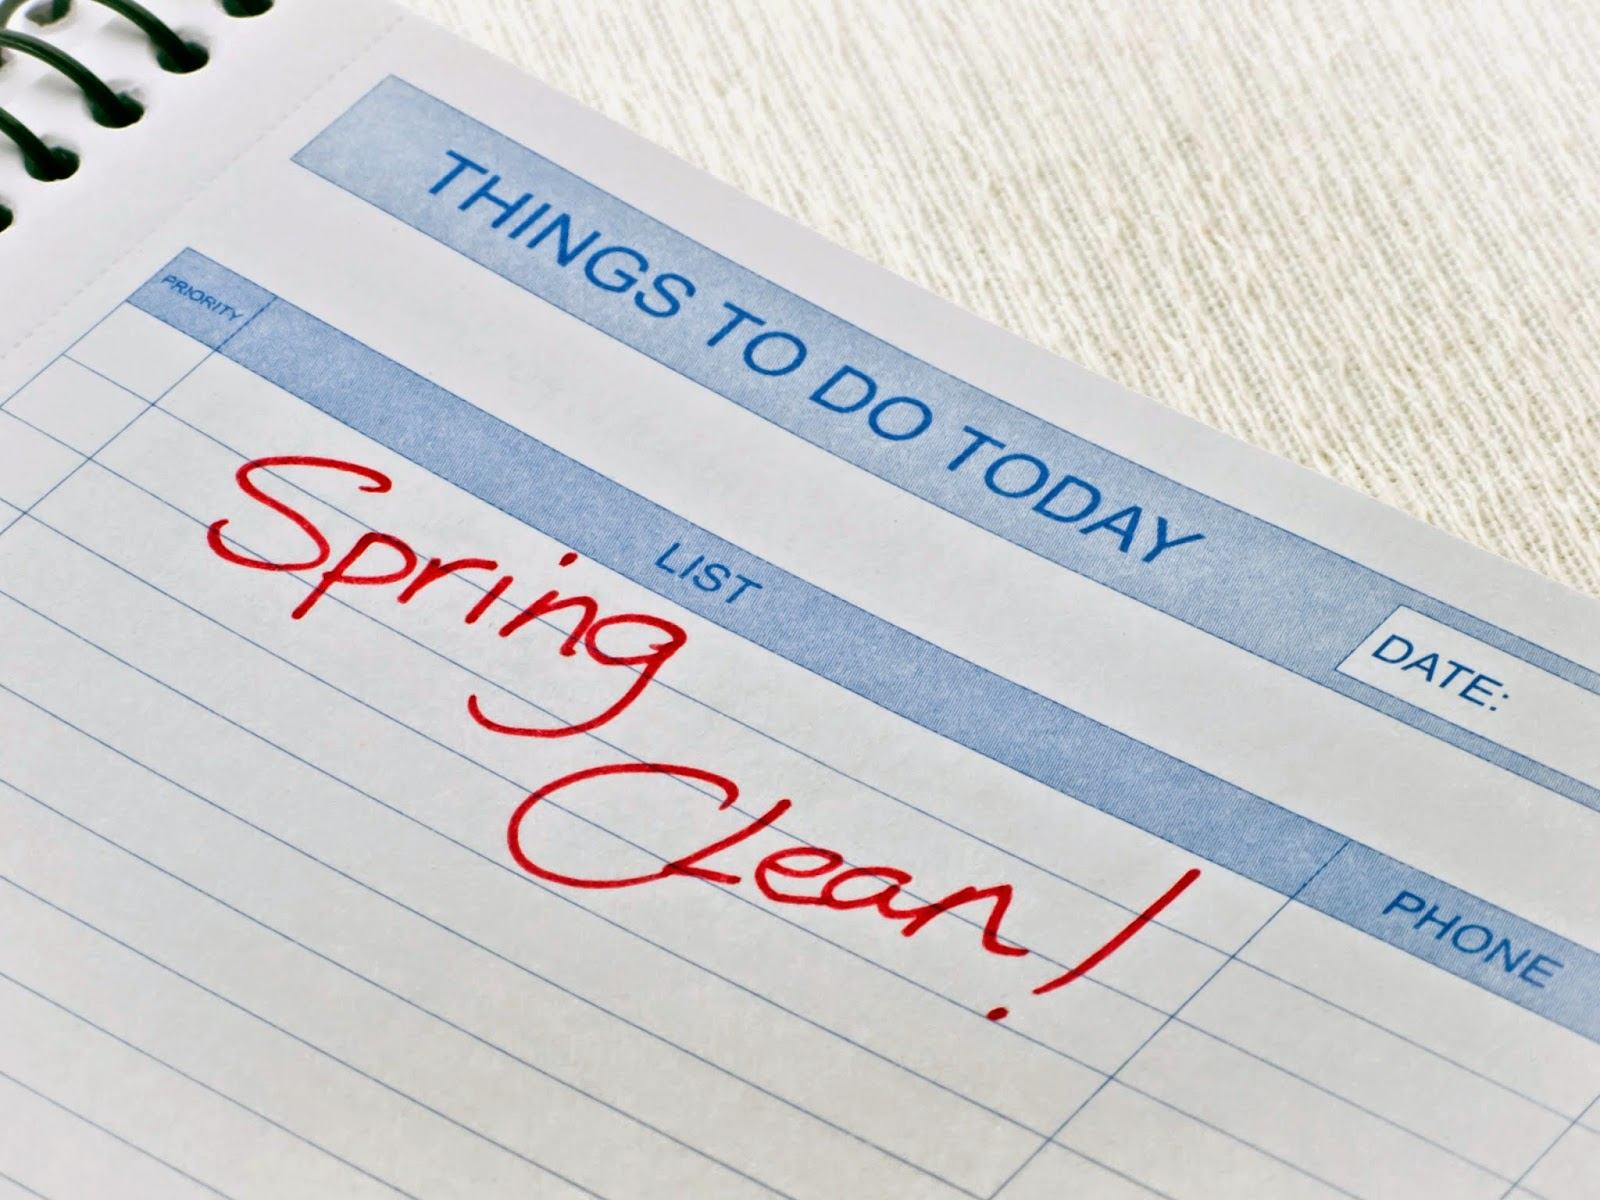 Gen3 Electric 215 352 5963 April 2015 Residential Wiring Checklist Sure Your Electrical Equipment And Devices Are Ready For The New Season Here A Few Things You Can Add To Spring Cleaning Ensure